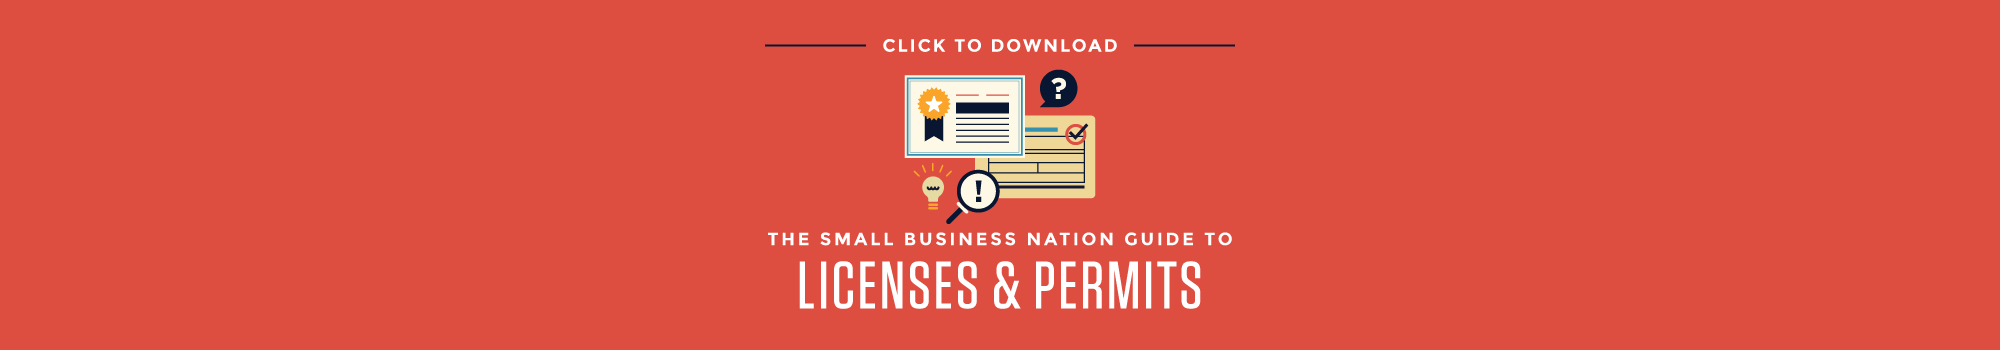 SBN_carousel_2017_Licenses&Permits.png